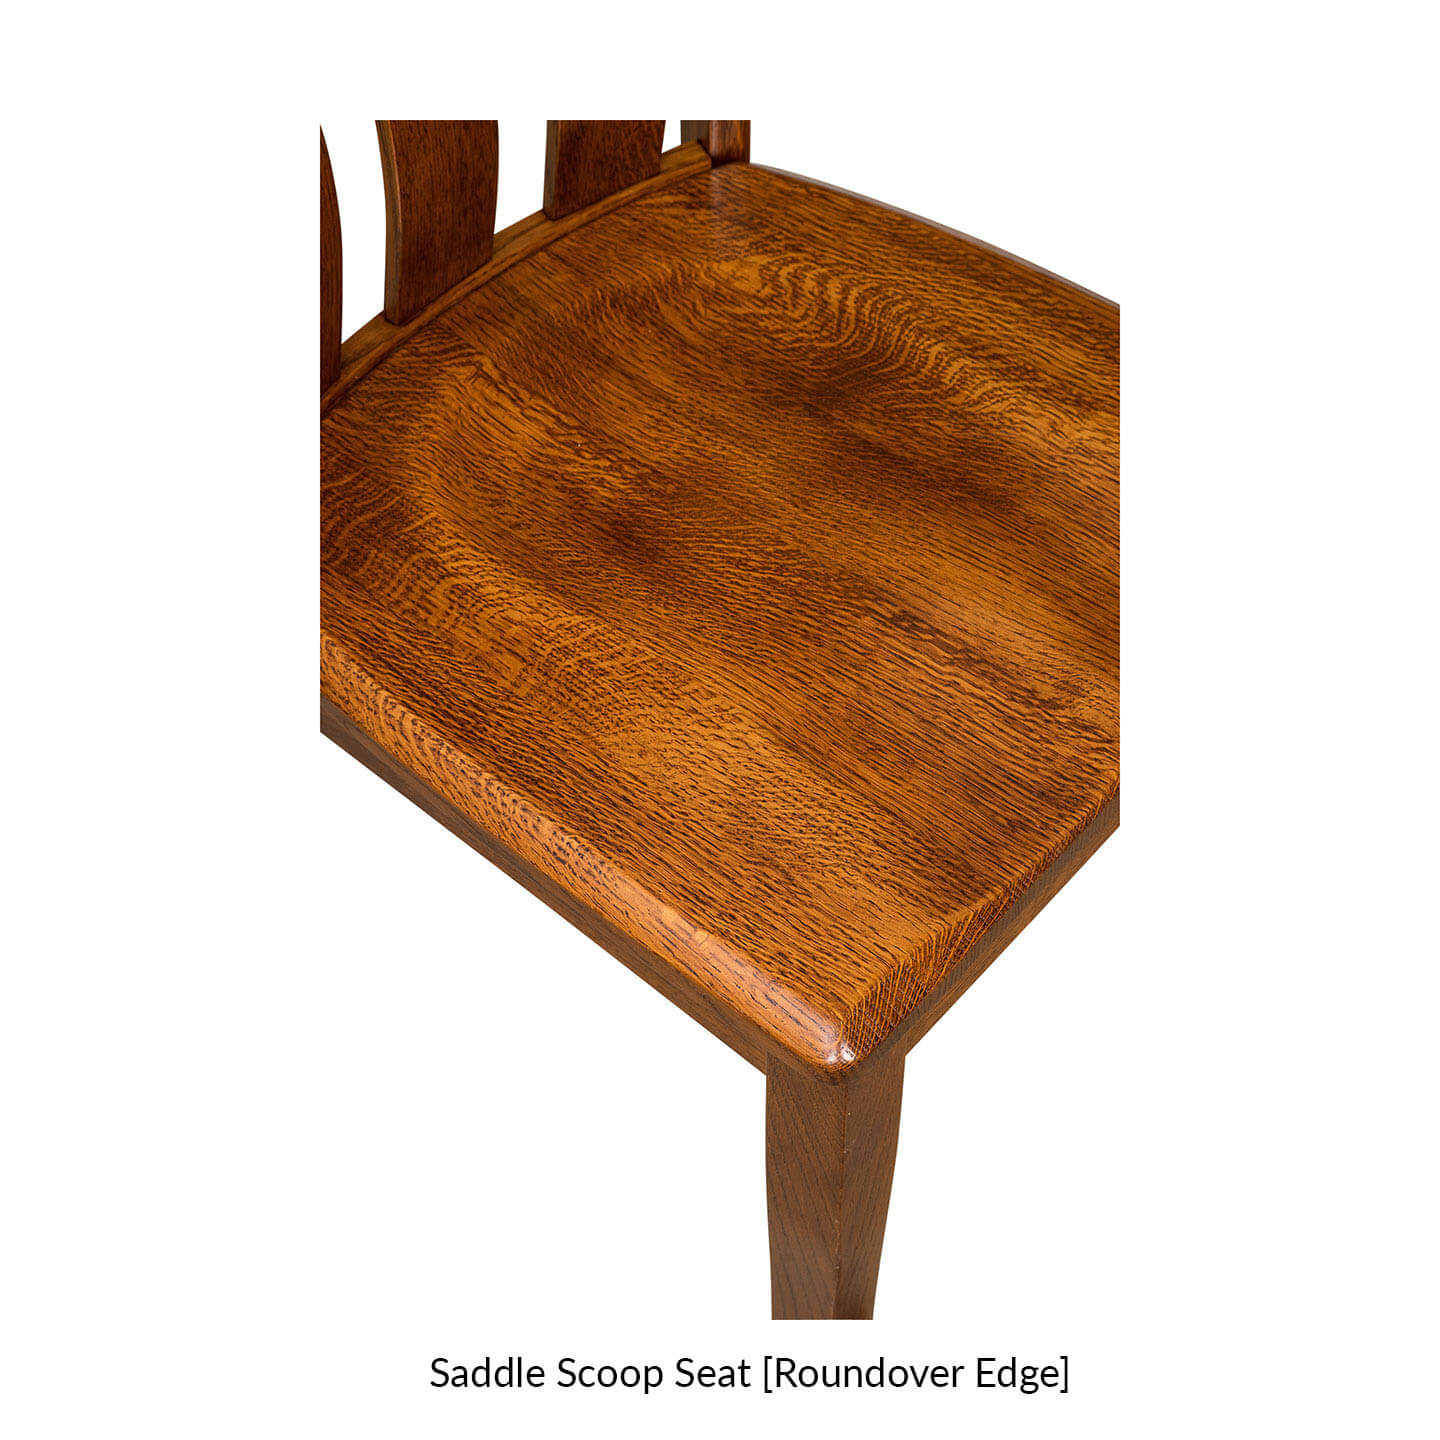 8-saddle-scoop-seat-roundover-edge-.jpg